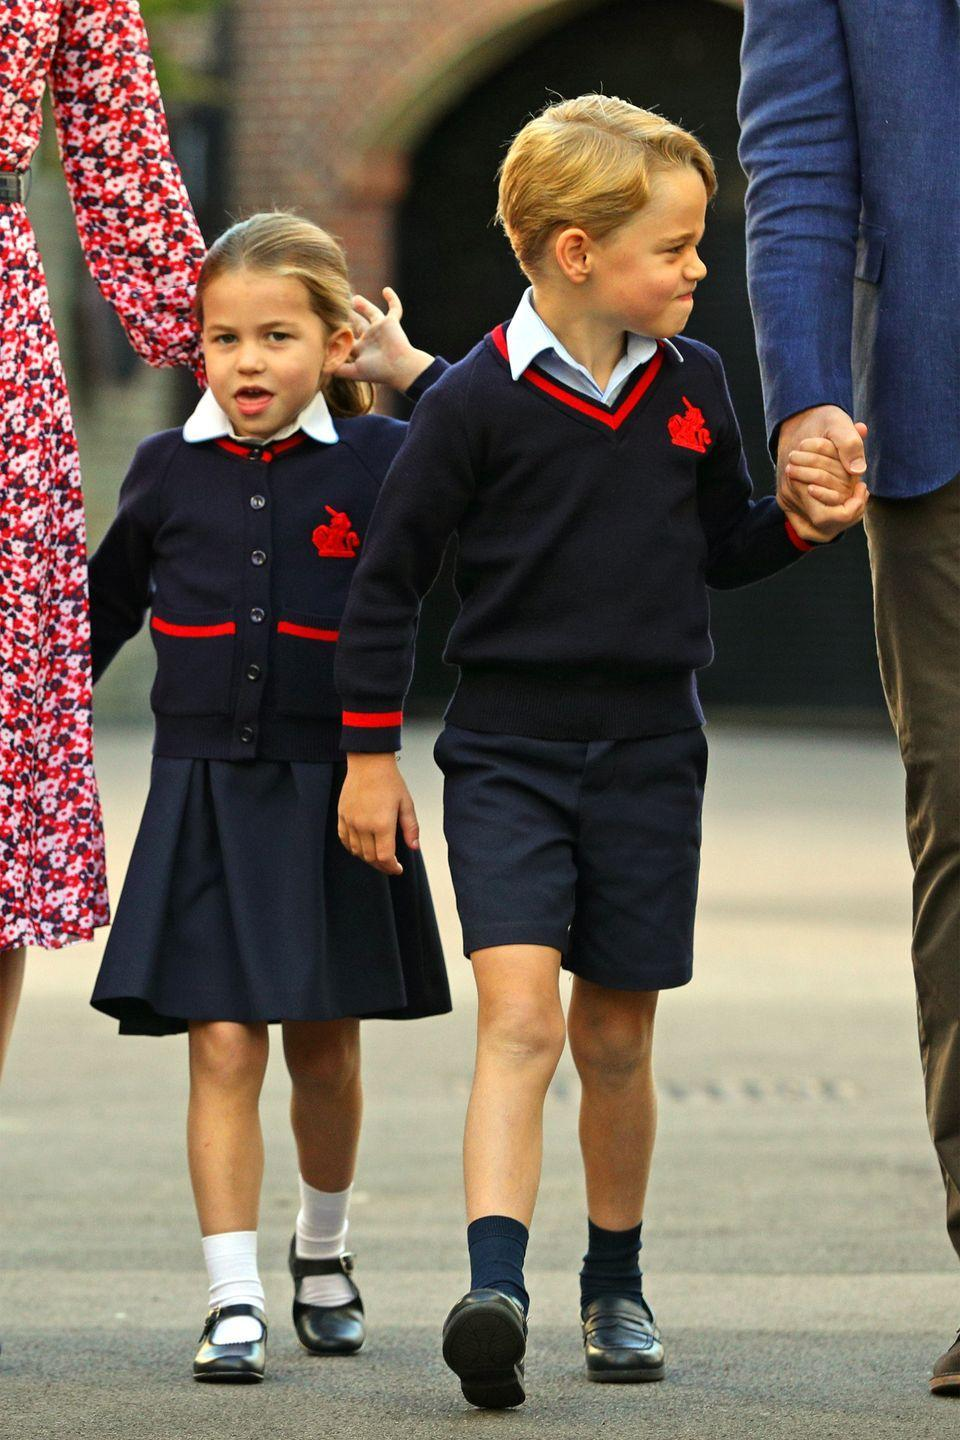 "<p>Prince George and Princess Charlotte make <a href=""https://www.harpersbazaar.com/celebrity/latest/a28922146/princess-charlotte-first-day-of-school-funny-face-photos/"" rel=""nofollow noopener"" target=""_blank"" data-ylk=""slk:silly faces"" class=""link rapid-noclick-resp"">silly faces</a> as they approach school. Prince George <a href=""https://www.harpersbazaar.com/celebrity/latest/a28923702/prince-george-first-day-school-reactions/"" rel=""nofollow noopener"" target=""_blank"" data-ylk=""slk:is the epitome"" class=""link rapid-noclick-resp"">is the epitome</a> of our morning mood. </p>"